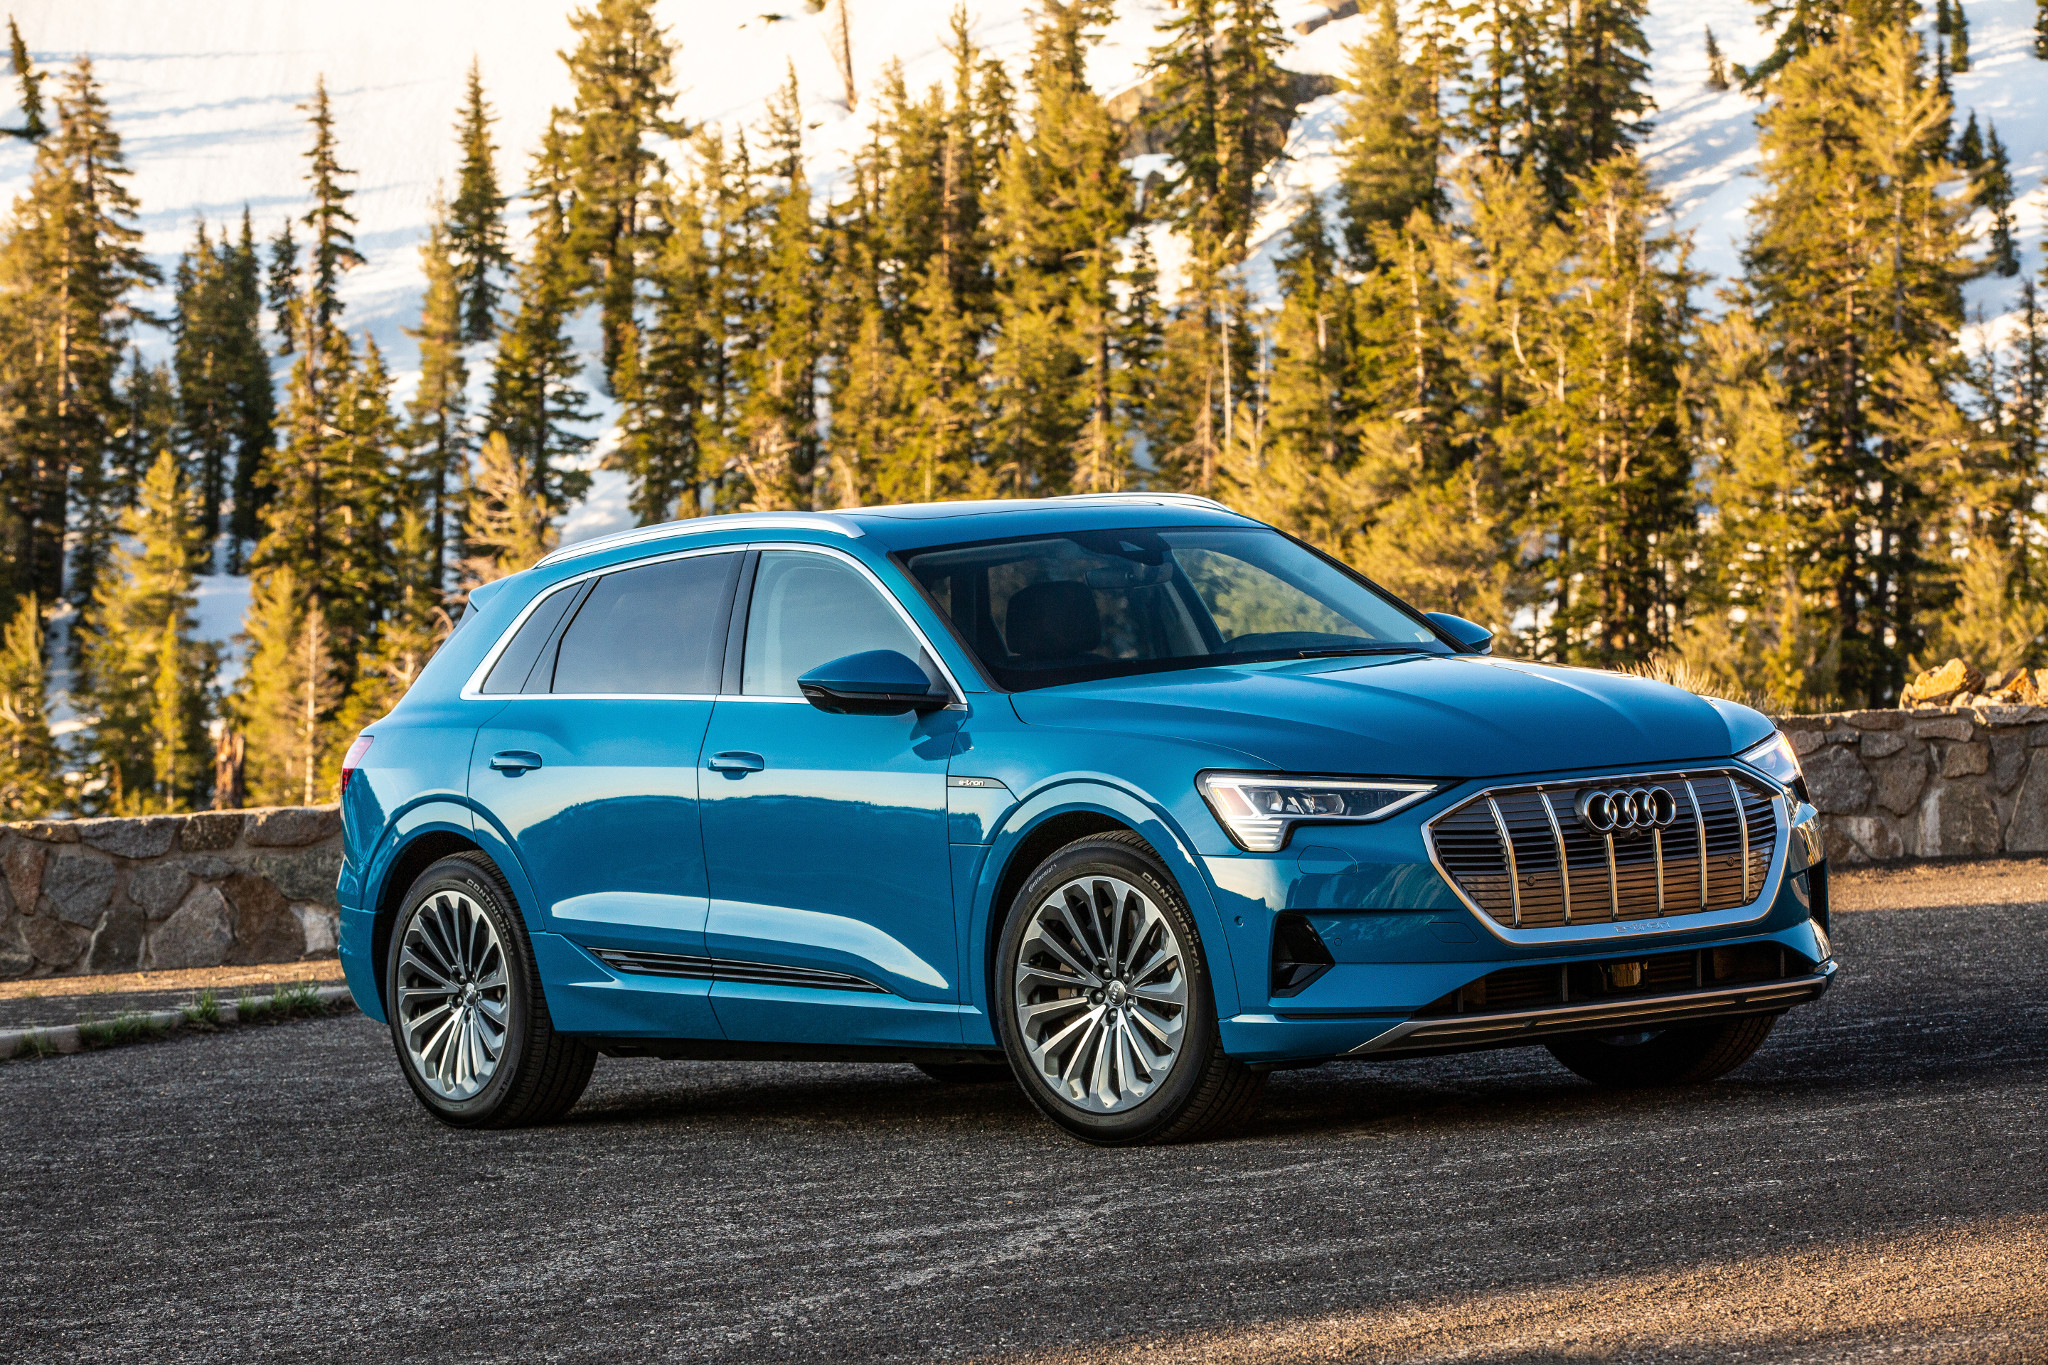 2019 Audi e-tron First Drive: Electric SUV Is Golden Gloves